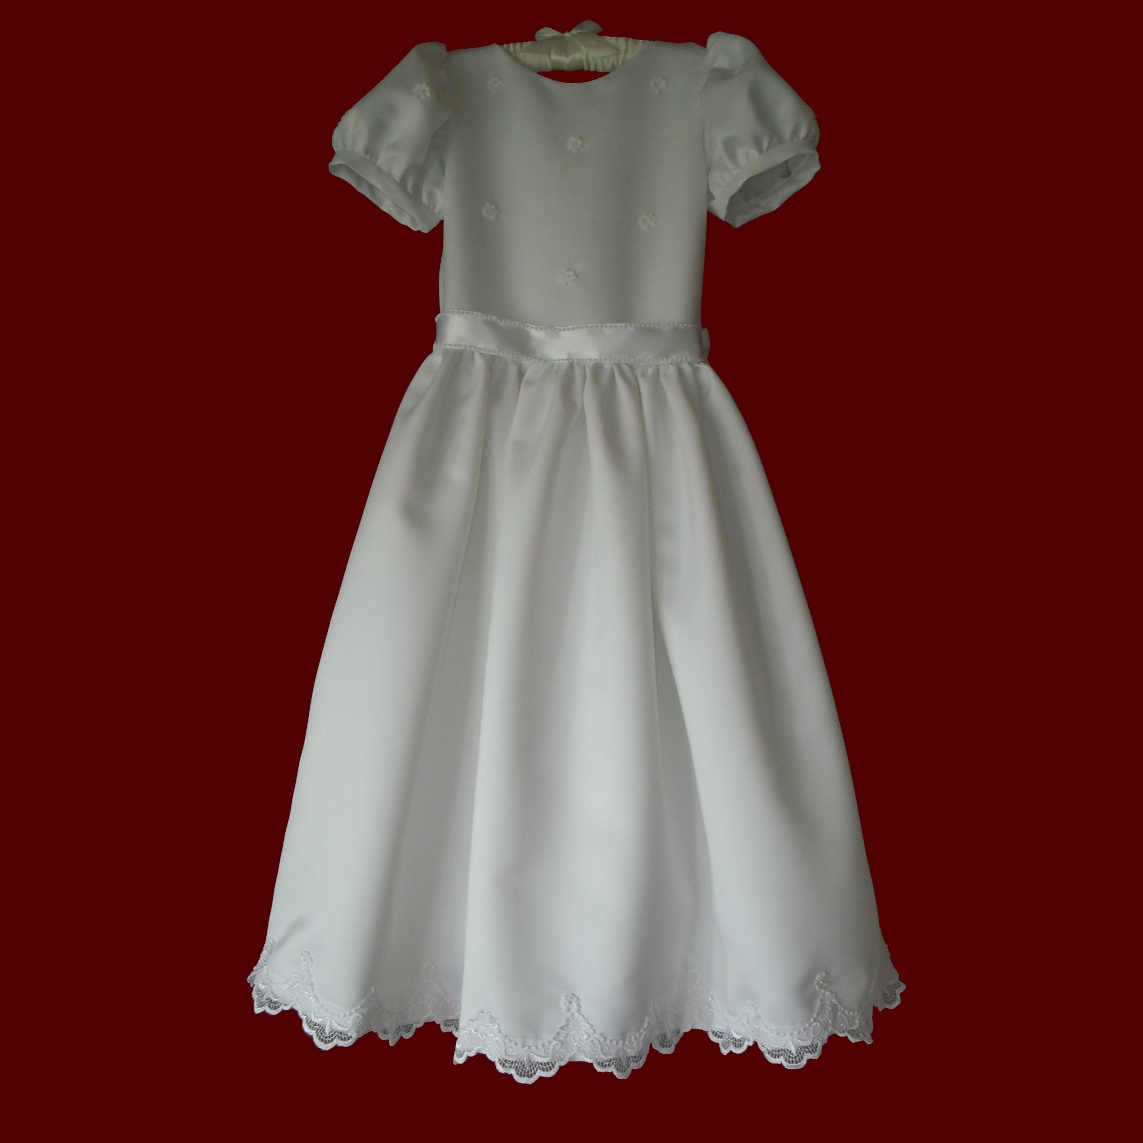 Communion dress, communion bag, tiara, umbrella, shoes, veil. Buy online or visit our Dublin store. We are one of Ireland's largest retailers of communion dresses and accessories, confirmation dresses and girls special occasion dresses.